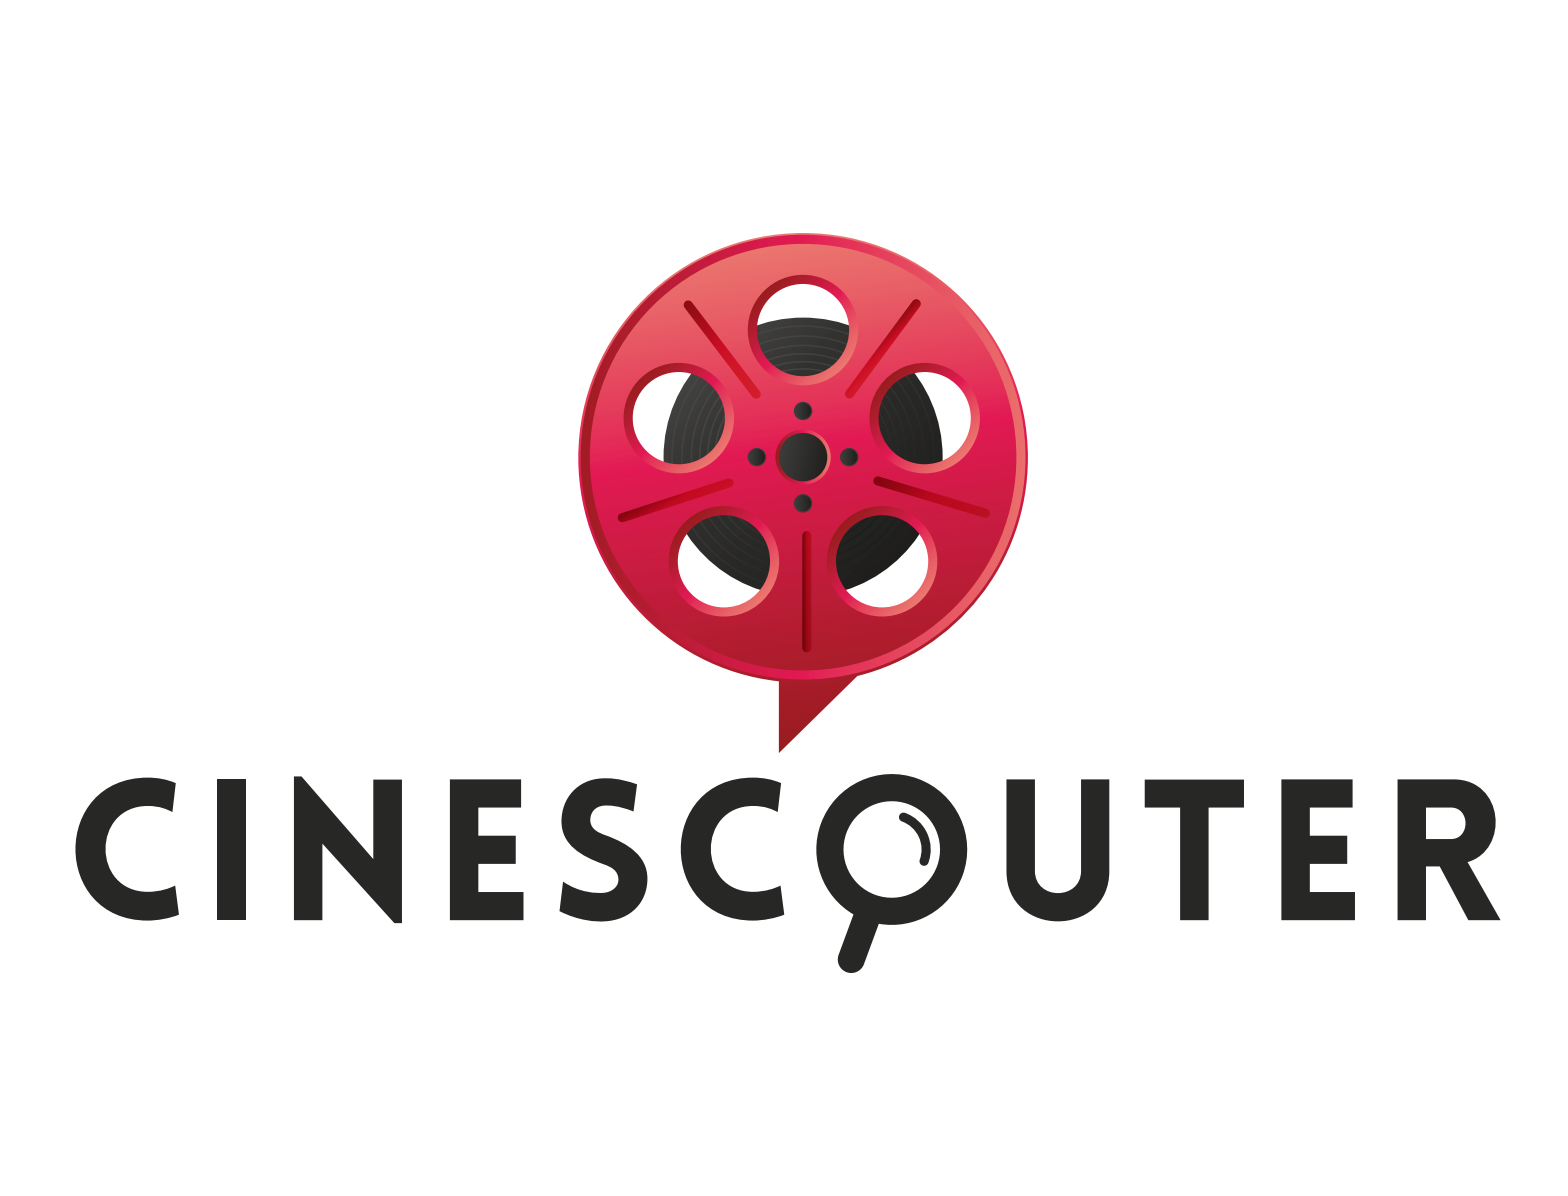 image_startup_Cinescouter